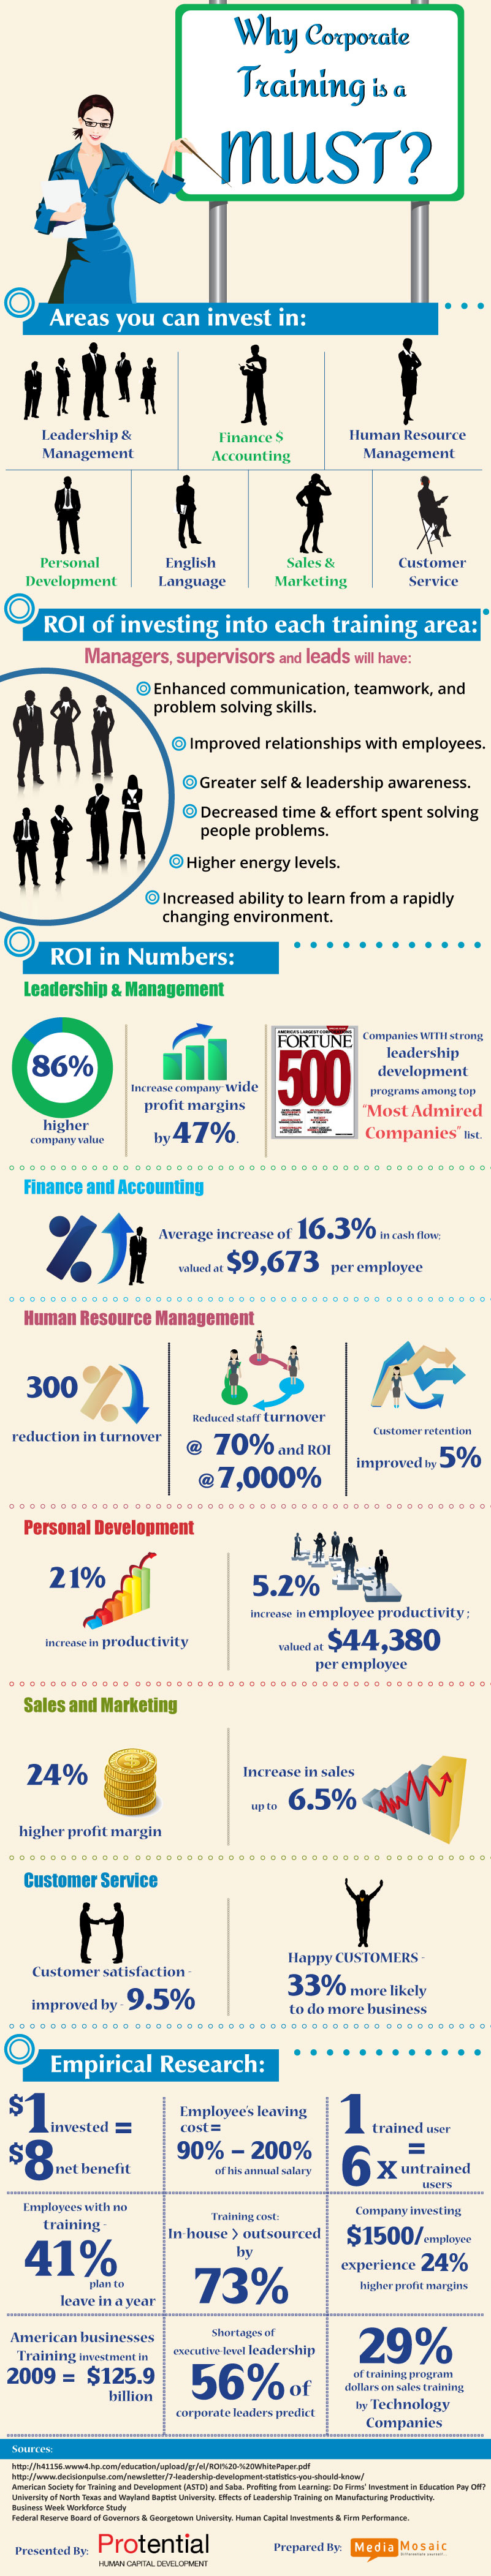 Corporate-Training-Programs-Areas-and-ROI-Calculation-by-Protential-Infographic